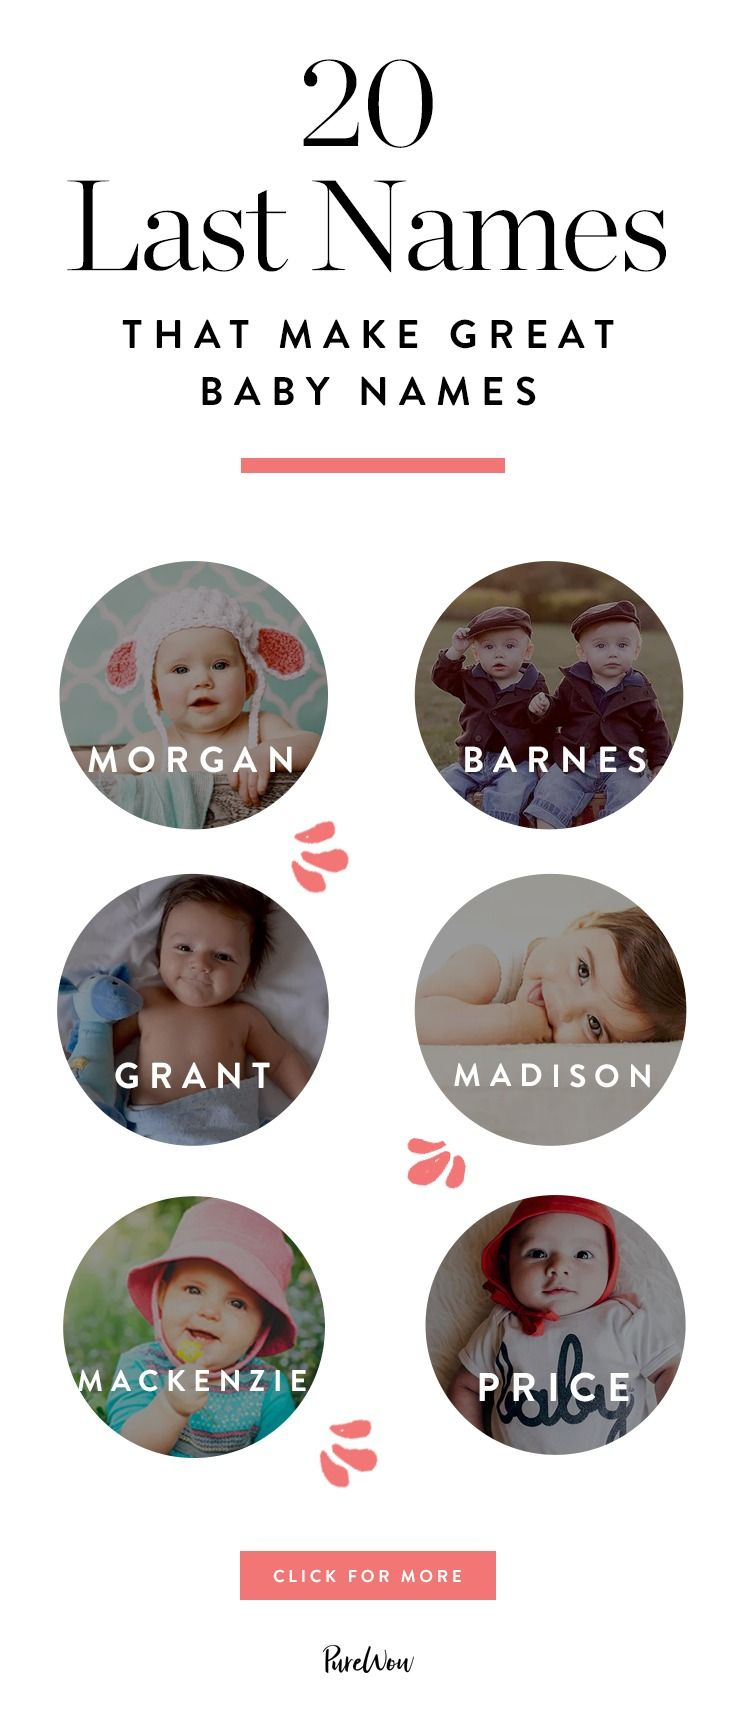 Whether you're bringing back an old family surname or passing on your own, there's something so cool about last names as first names. Here are 20 adorable surnames that make the best baby names.